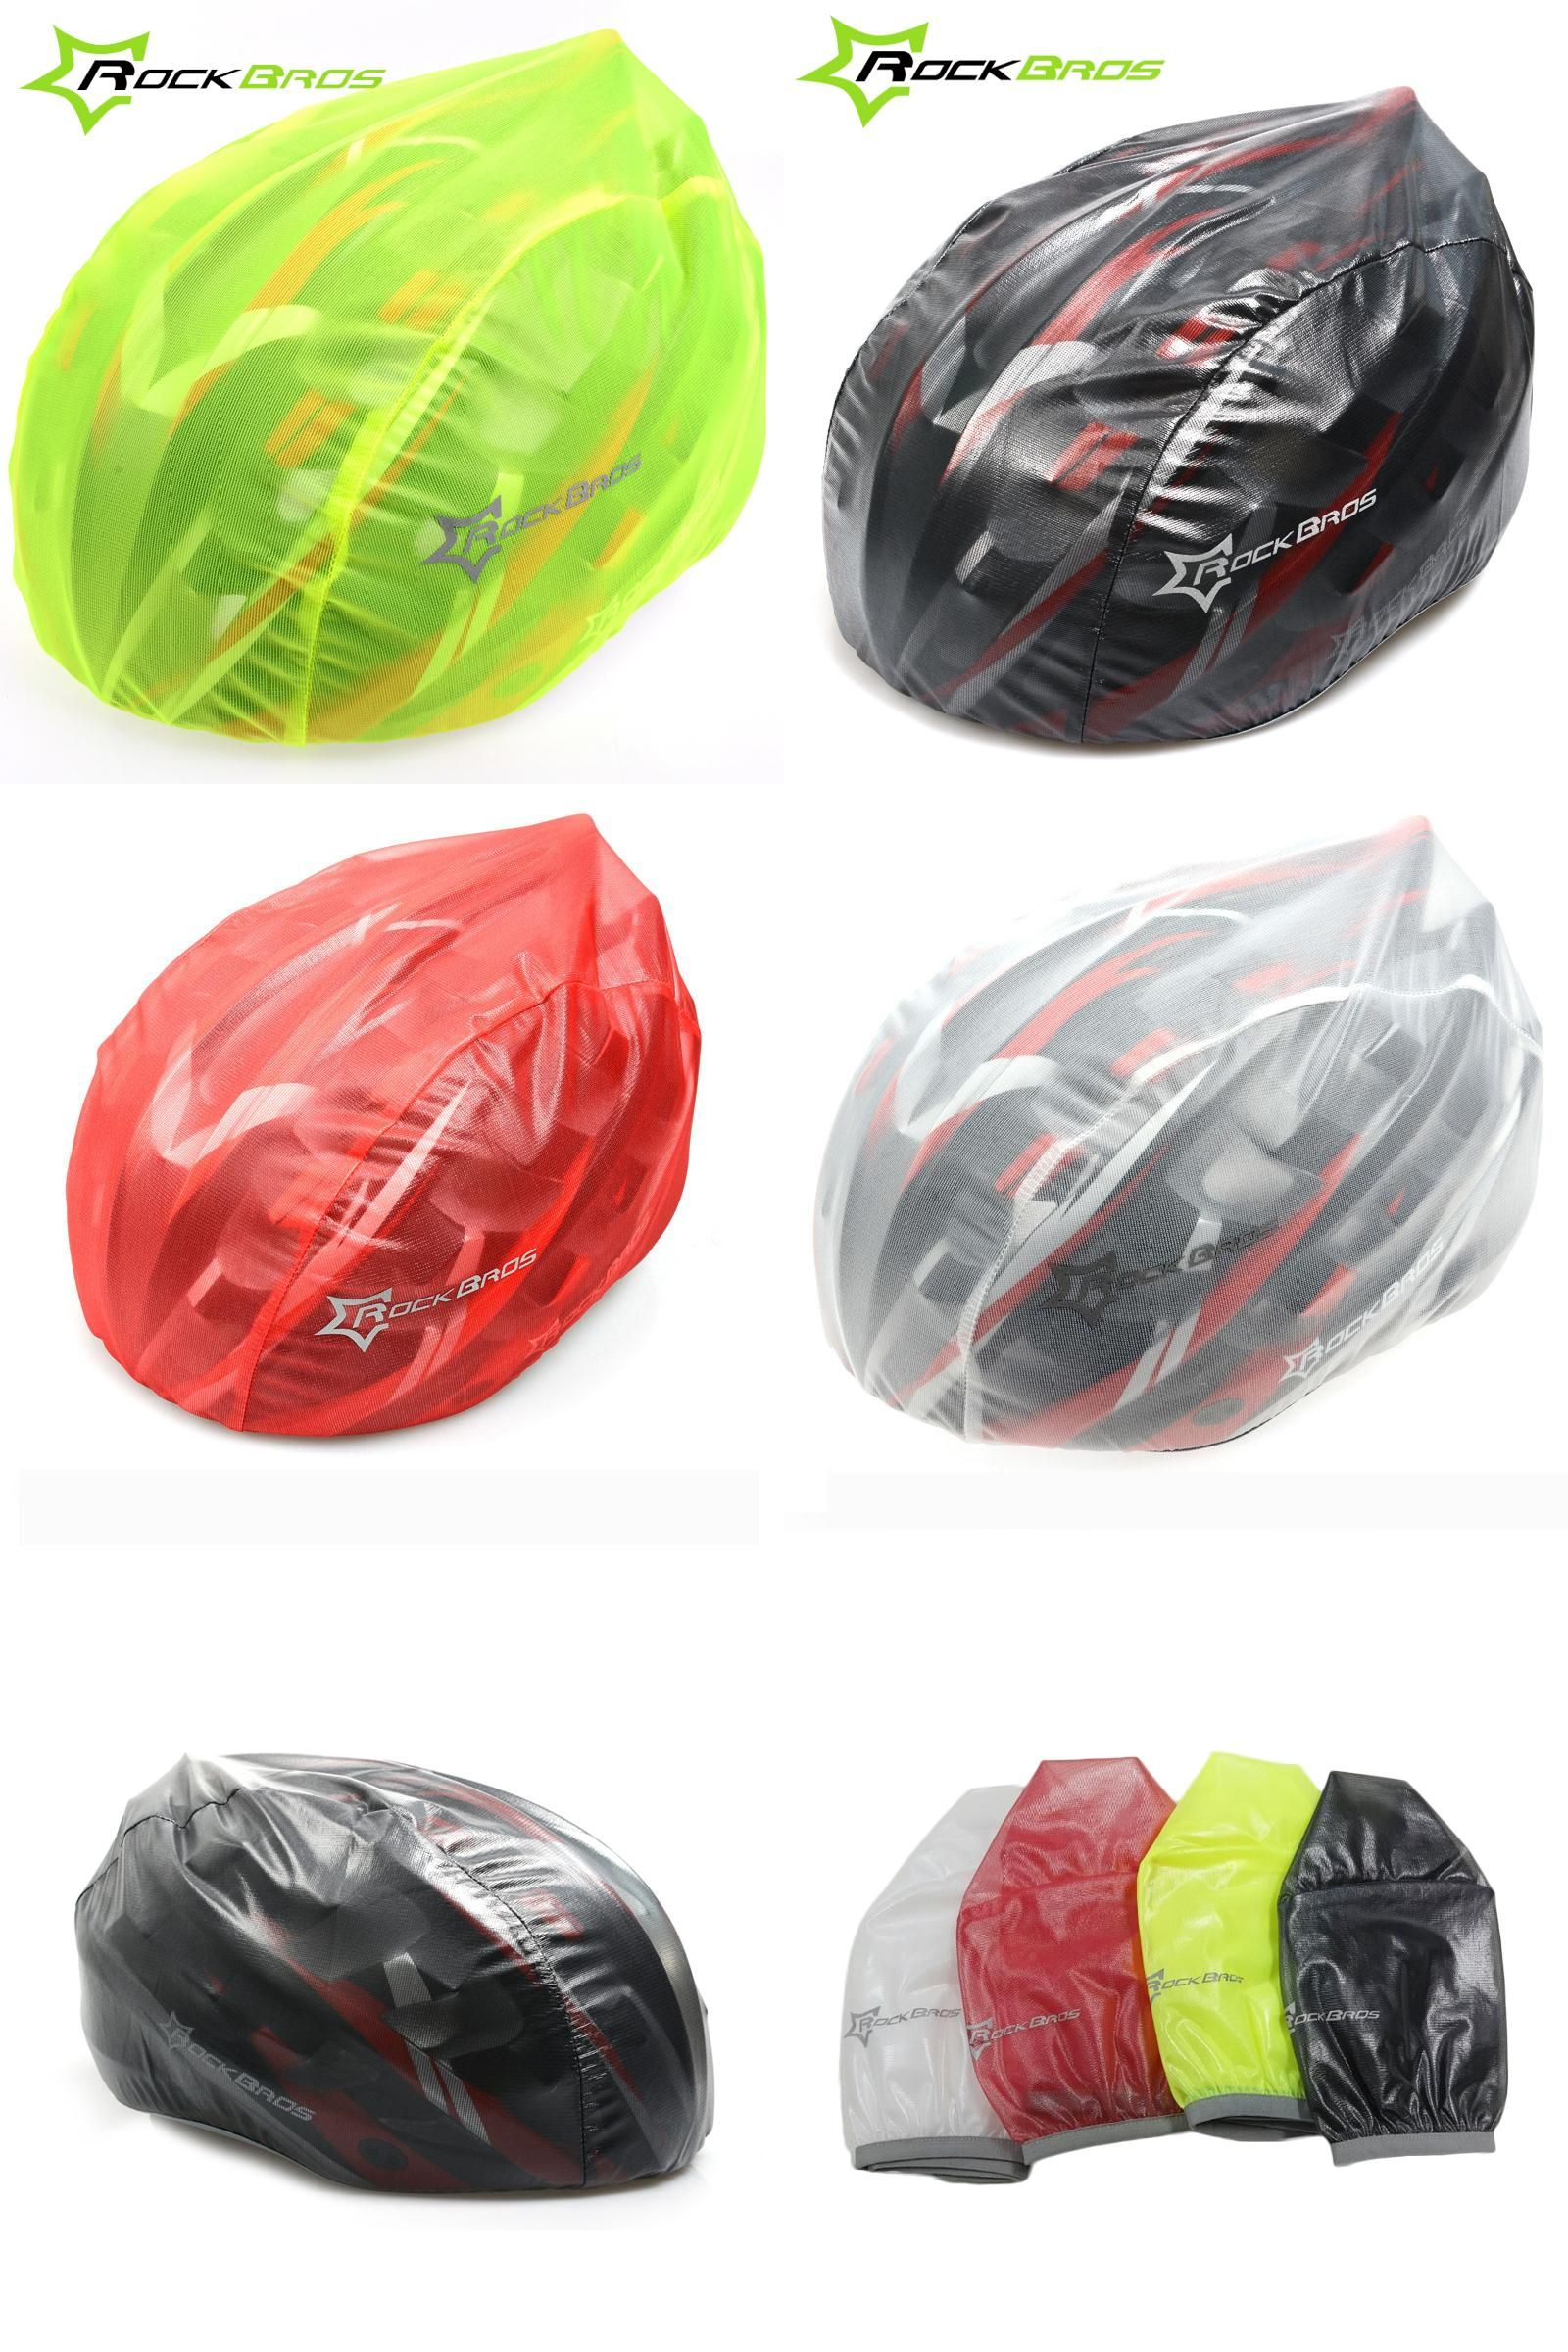 RockBros Black Dust Rain Cover for Bicycle Cycling Helmet One Size